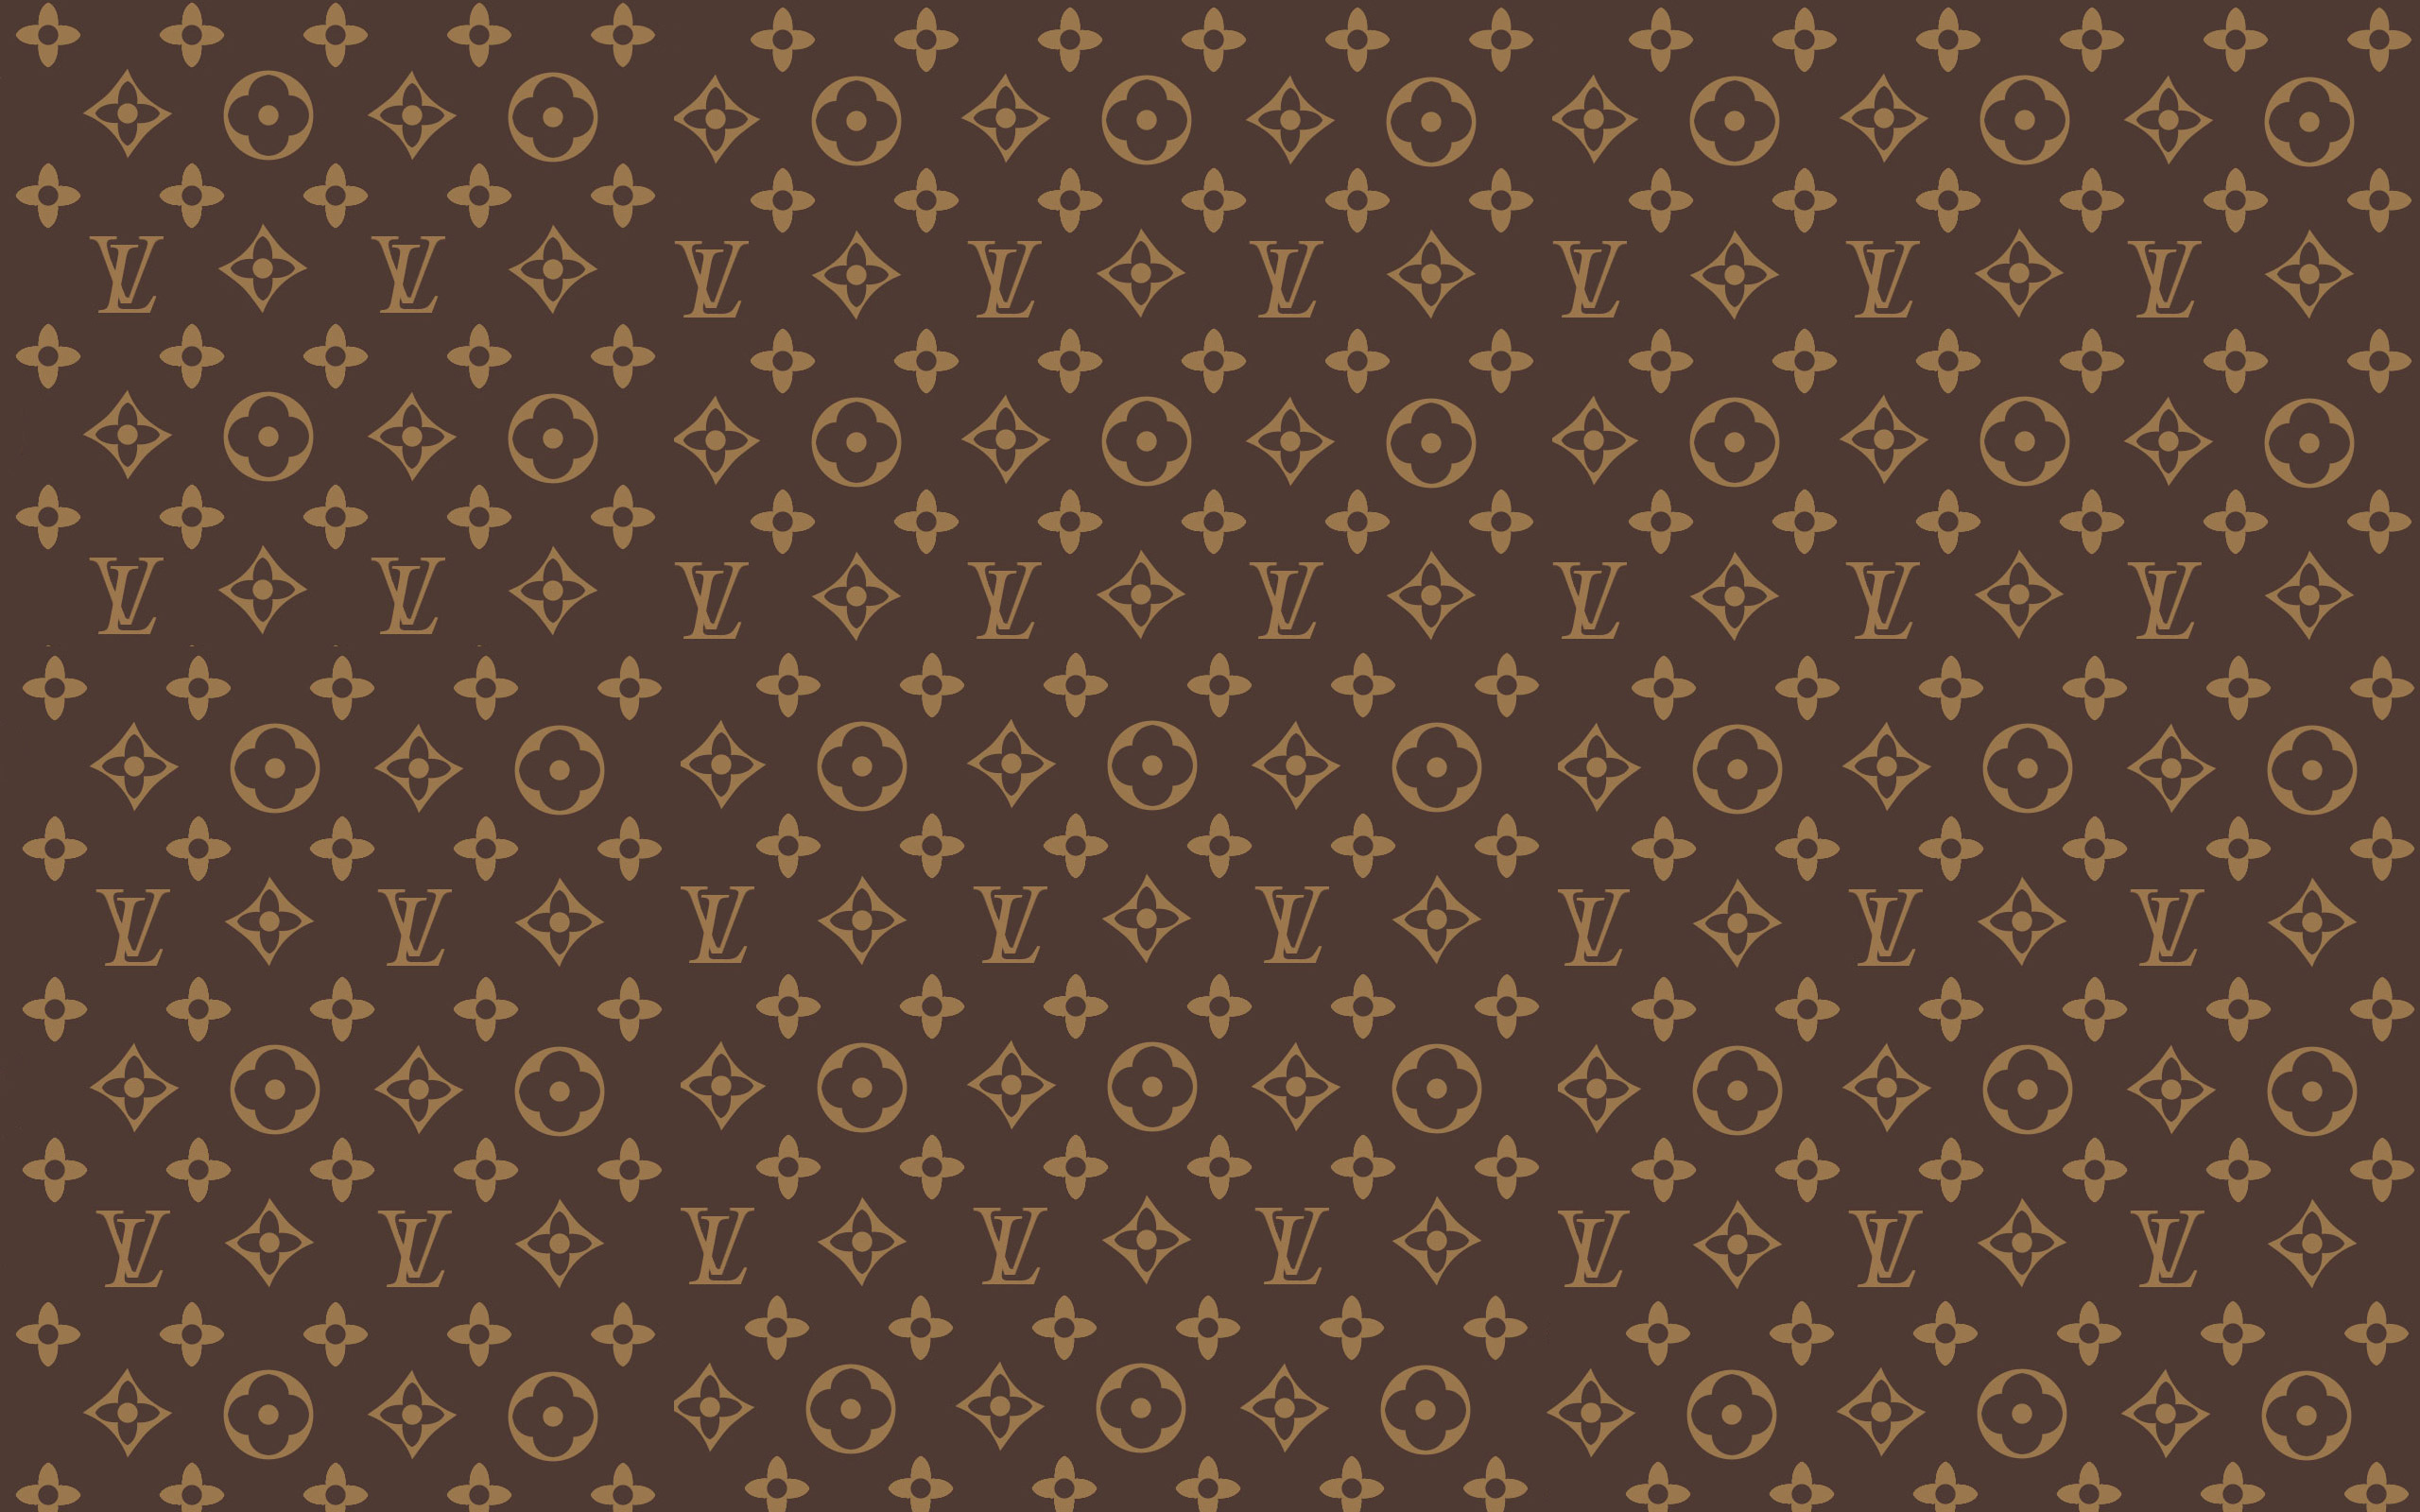 10 louis vuitton hd wallpapers background images wallpaper abyss hd wallpaper background image id820959 2560x1600 products louis vuitton voltagebd Gallery